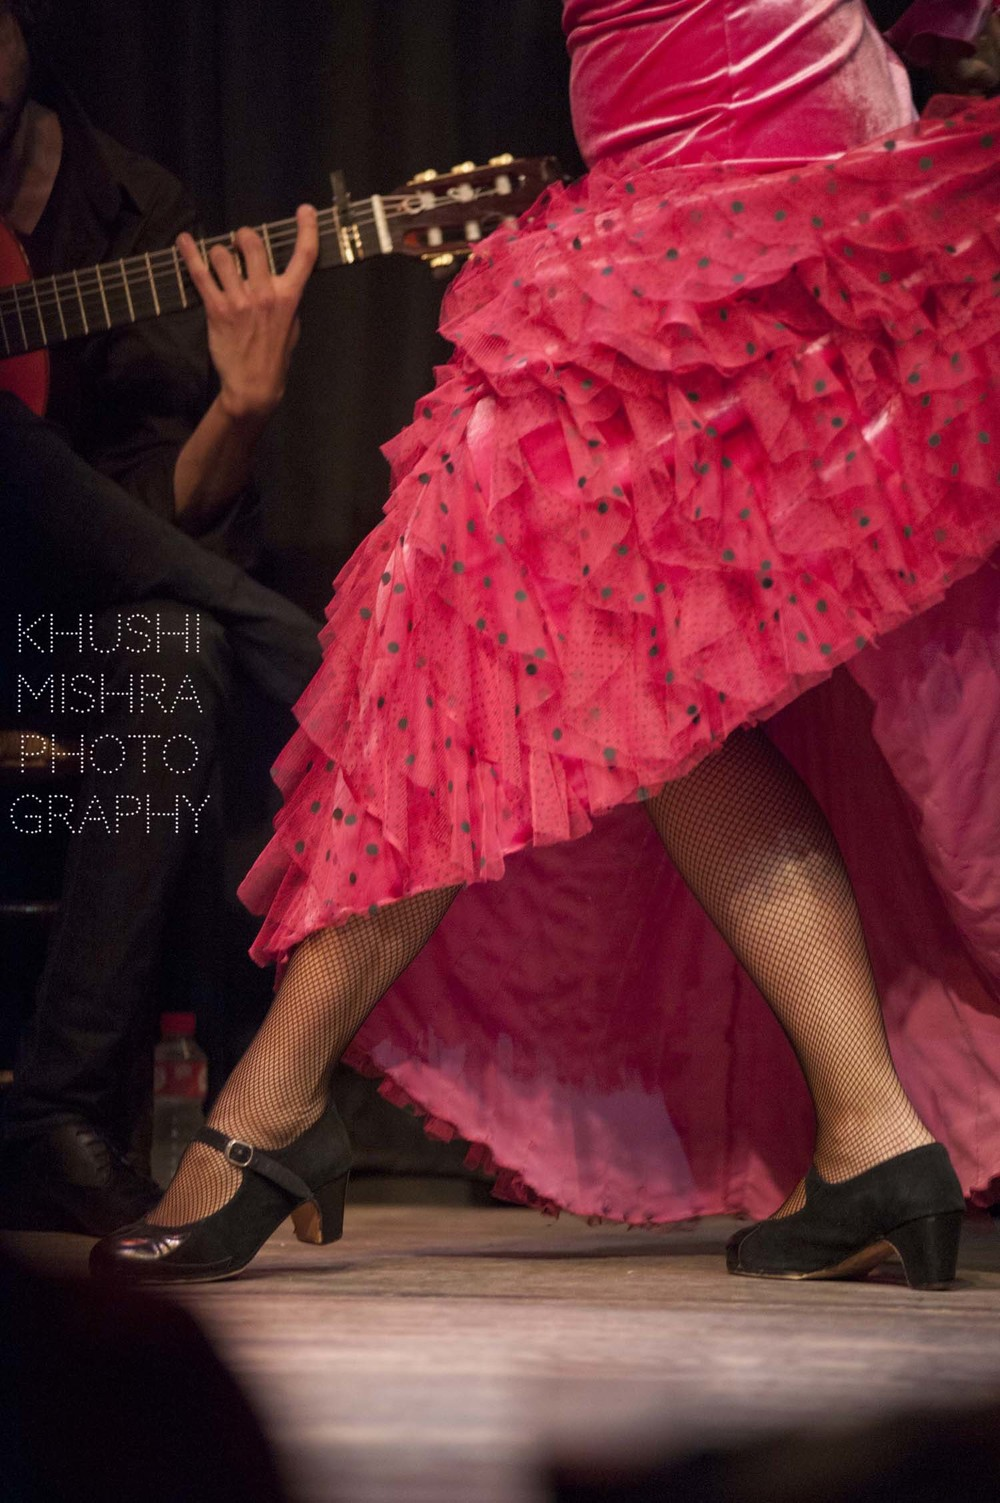 Flamenco_dsc_7932 copy.jpg